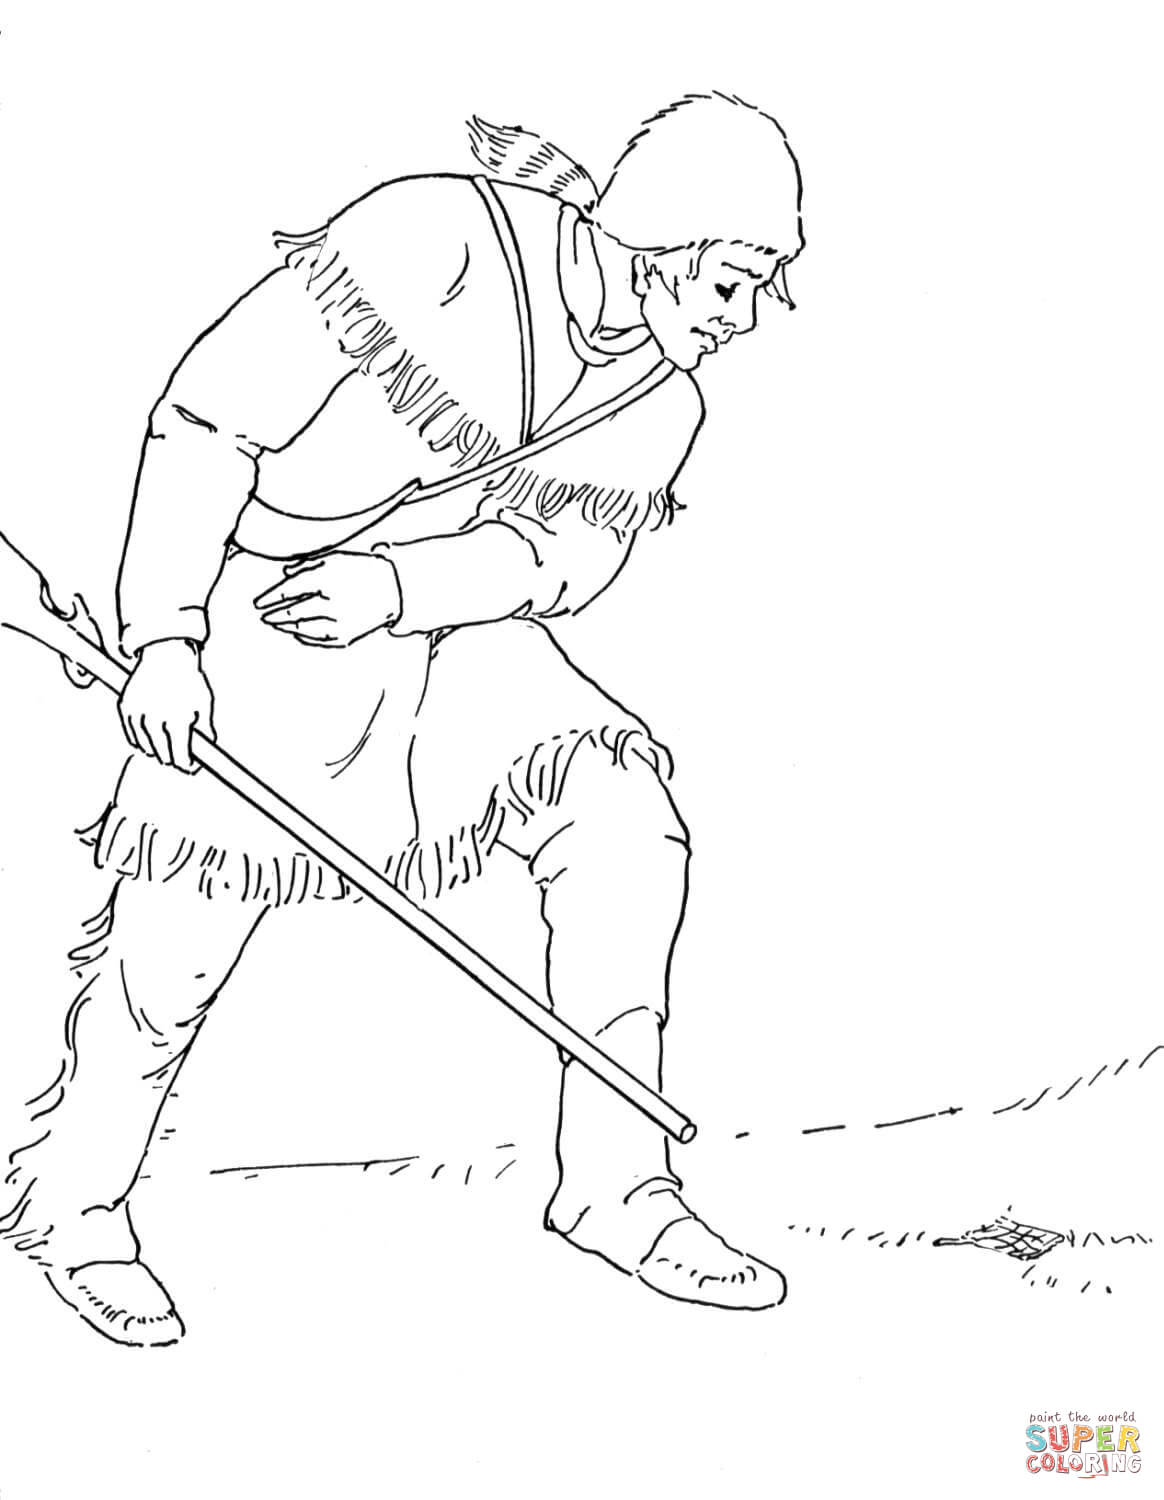 Sacagawea Coloring Page Collection Of Sacagawea Coloring Page to Print